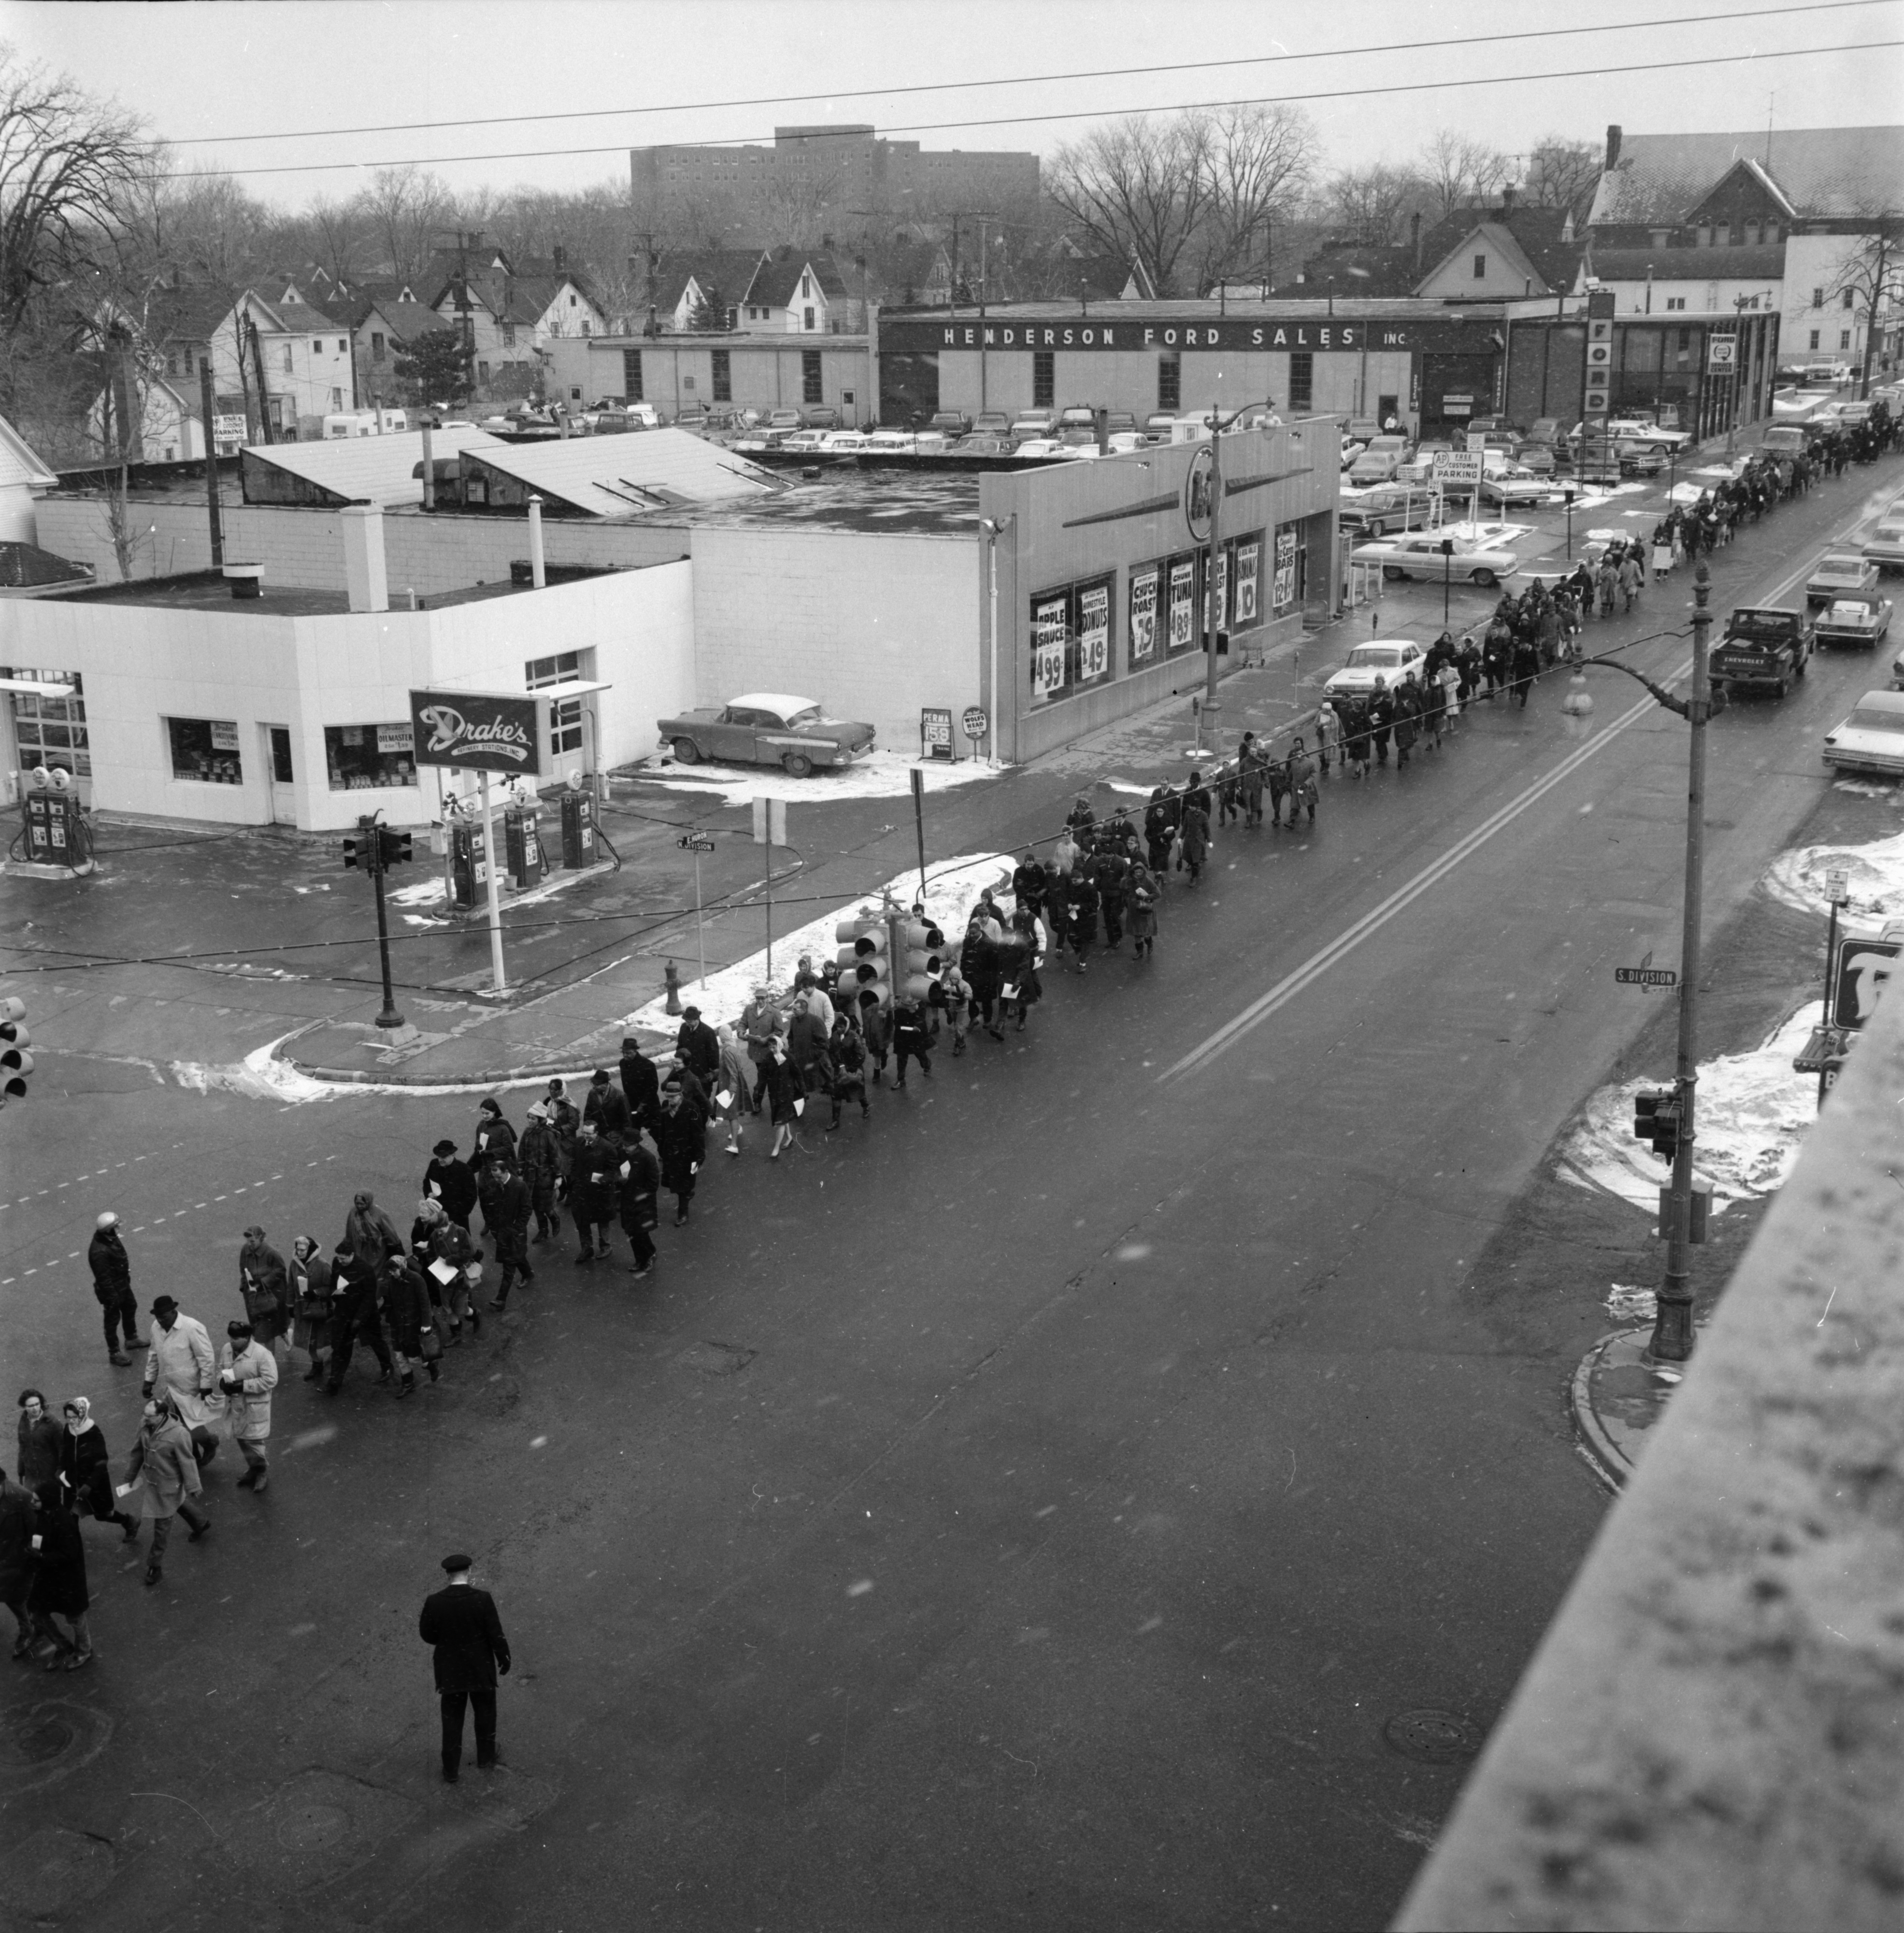 Ann Arbor March of Reparation for Selma, Alabama, March 1965 image